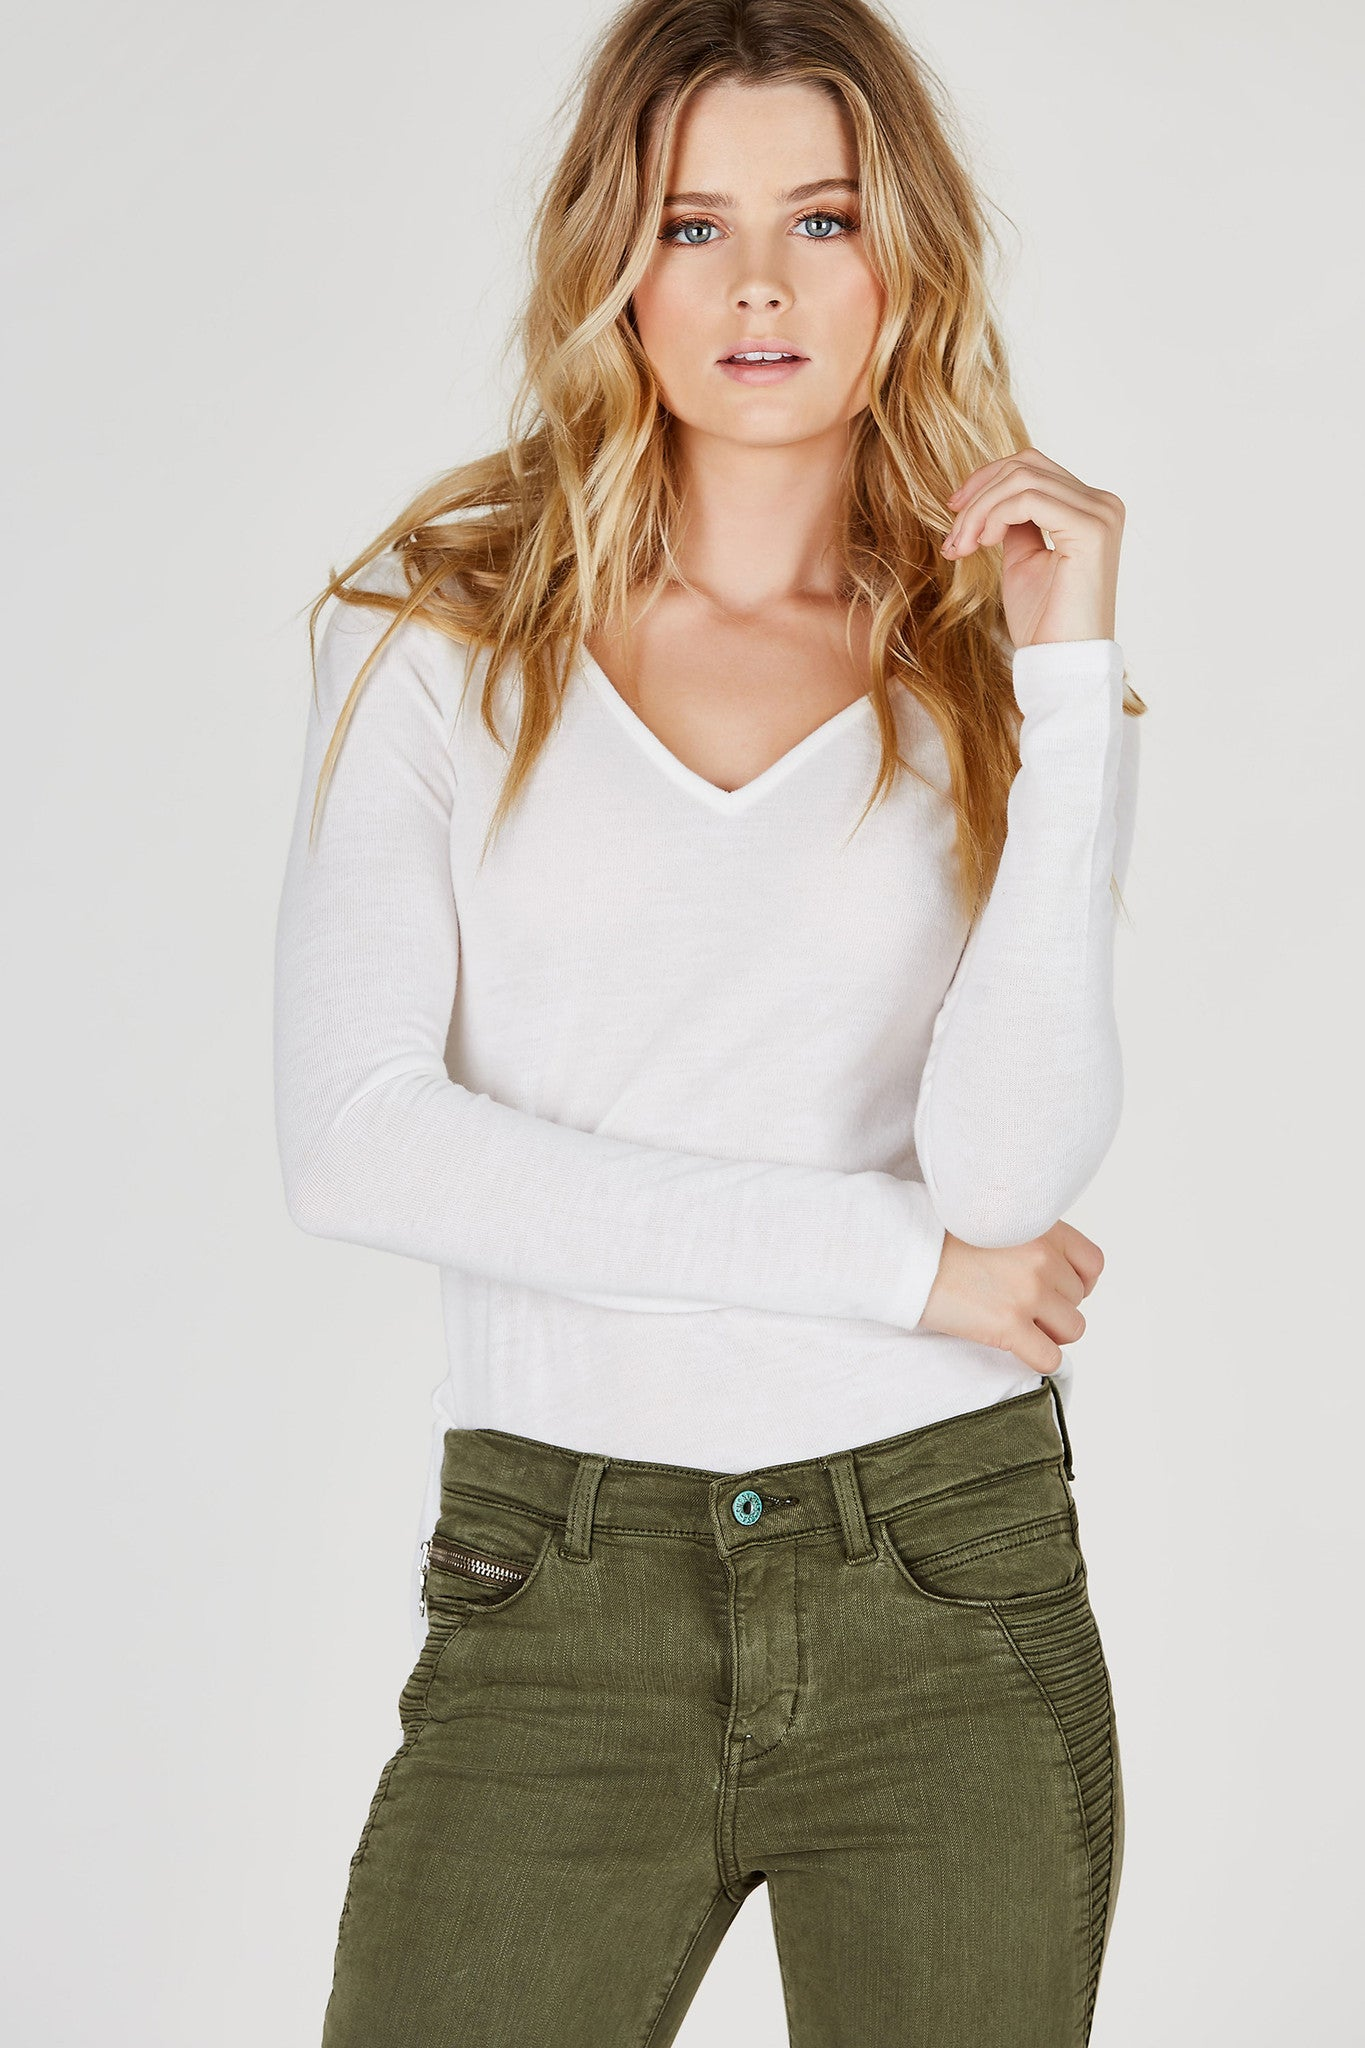 A basic long sleeve top with a classic V-neckline. Super soft material, perfect to lounge around in! Longline with straight hem featuring side slits. Pair with skinny jeans and ankle booties with a denim jacket on top!